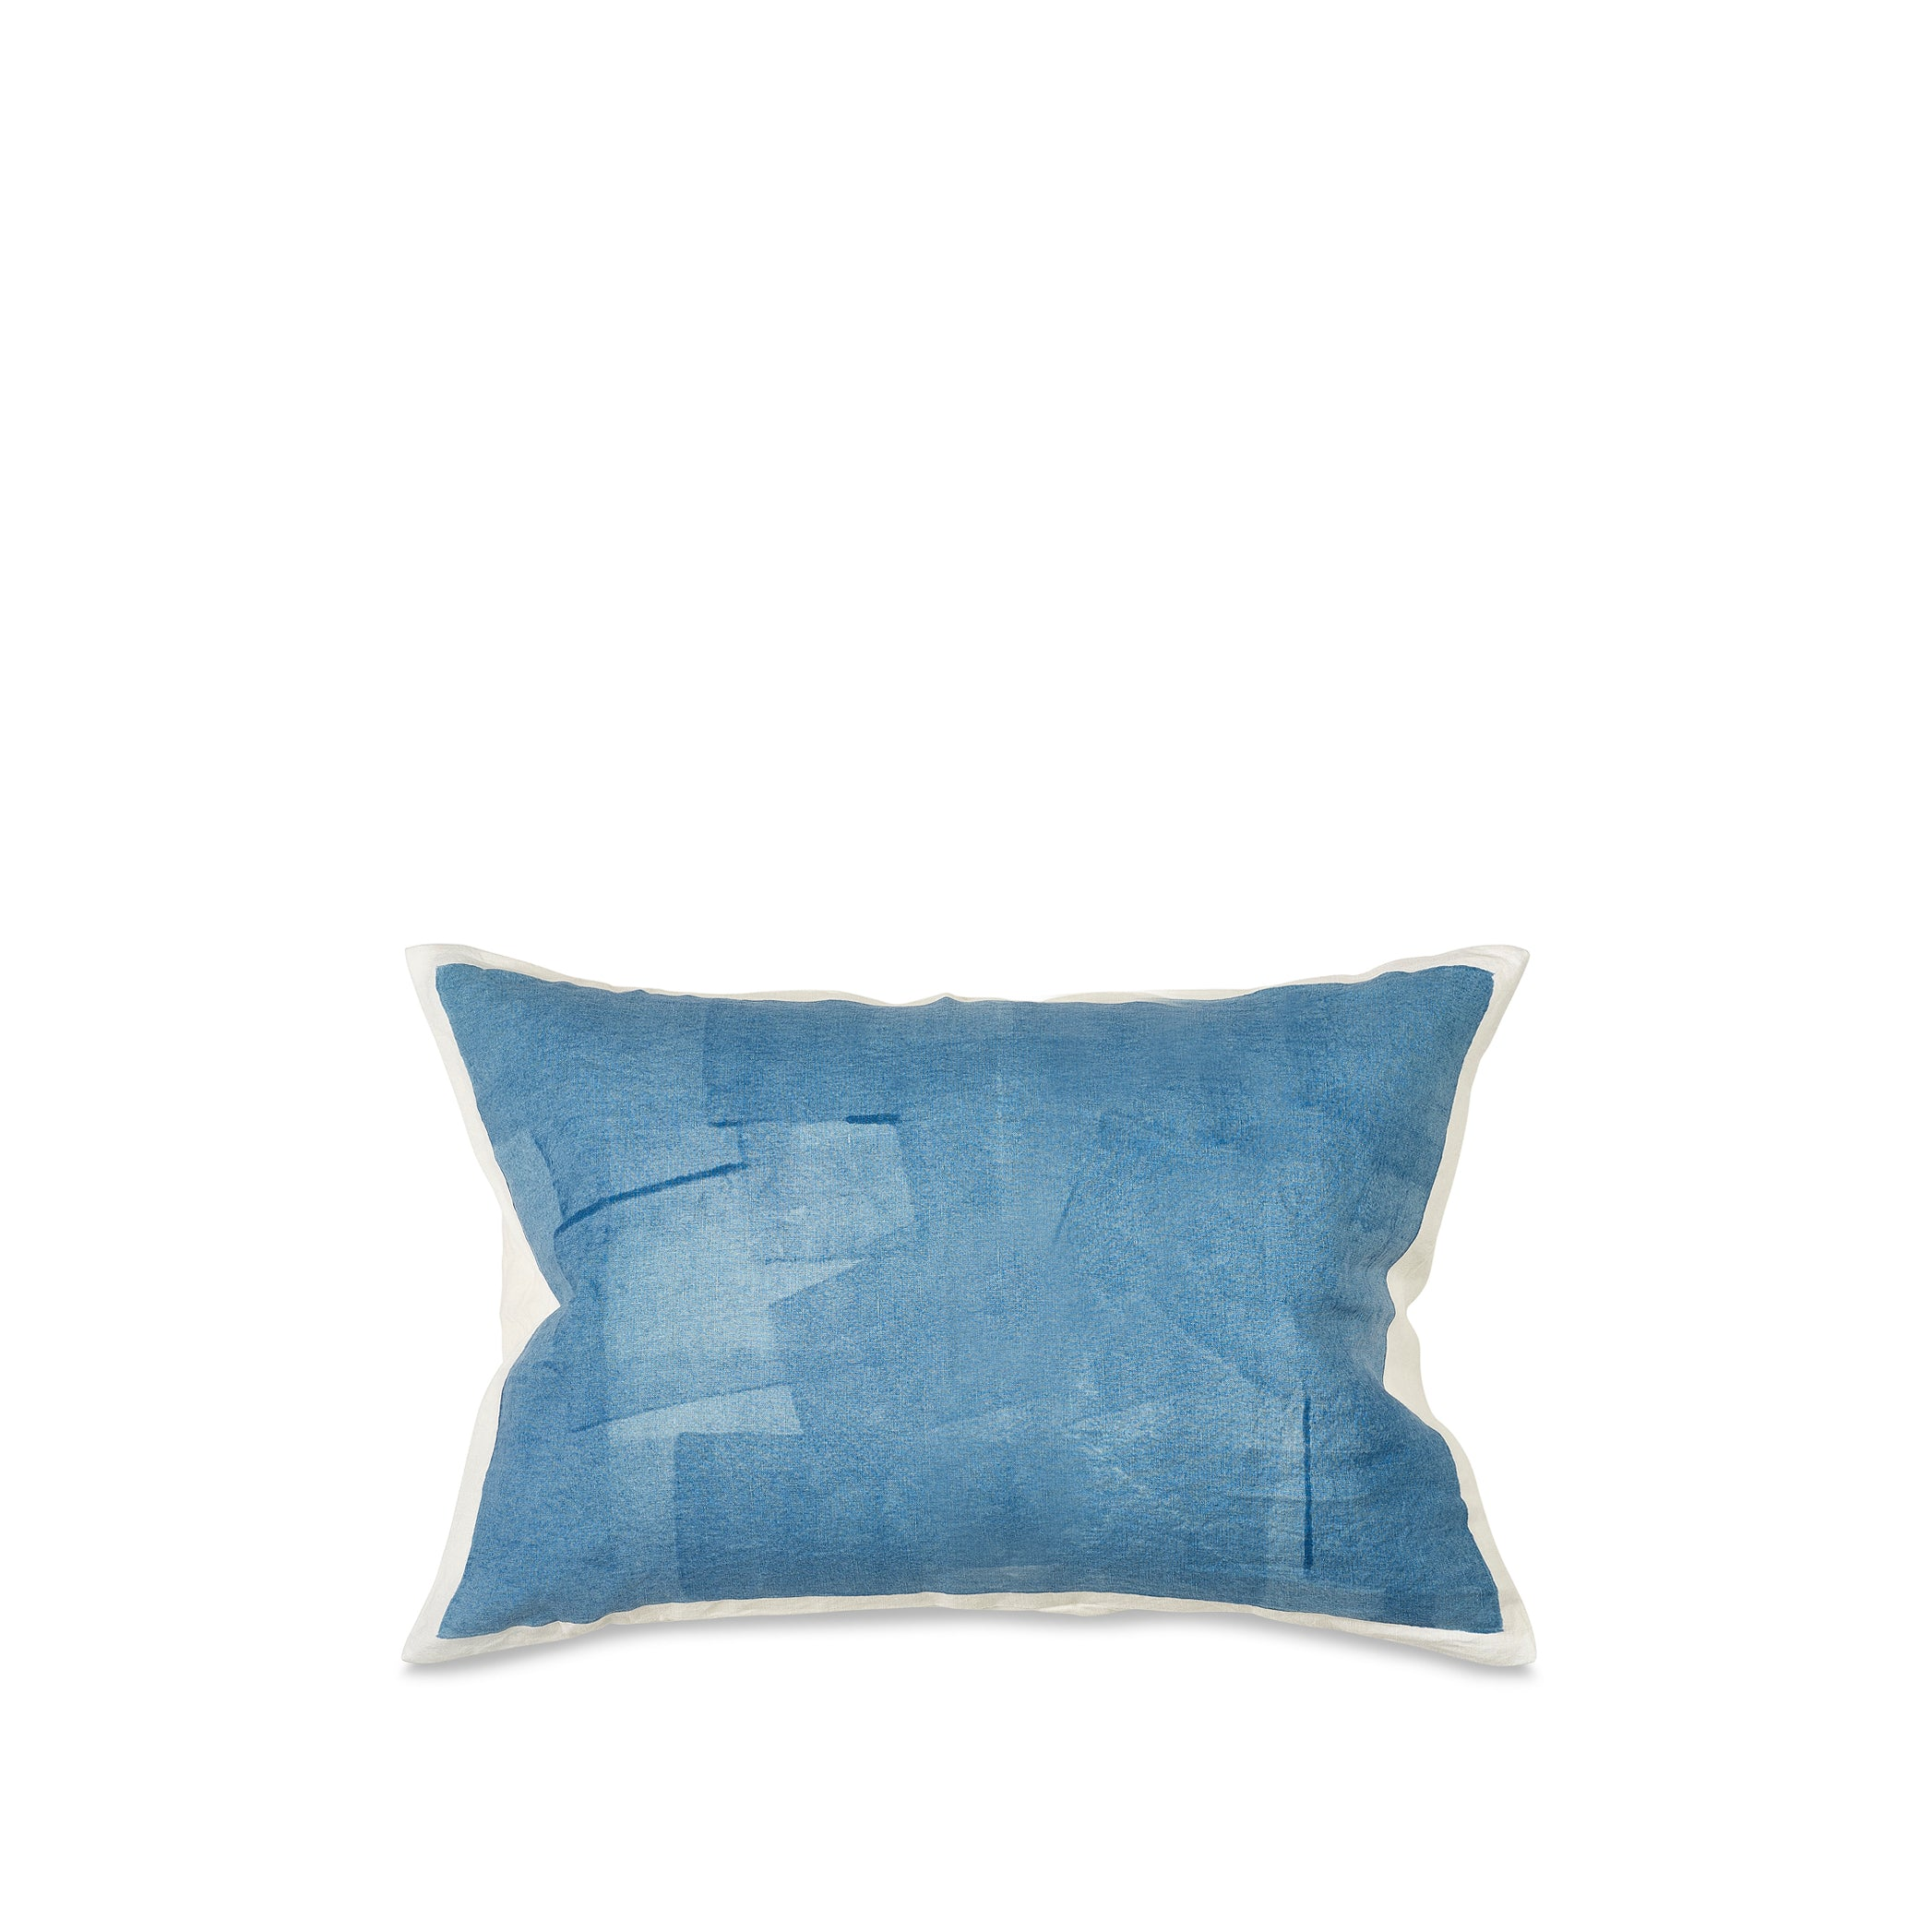 Hand Painted Linen Cushion in Sky Blue, 60cm x 40cm